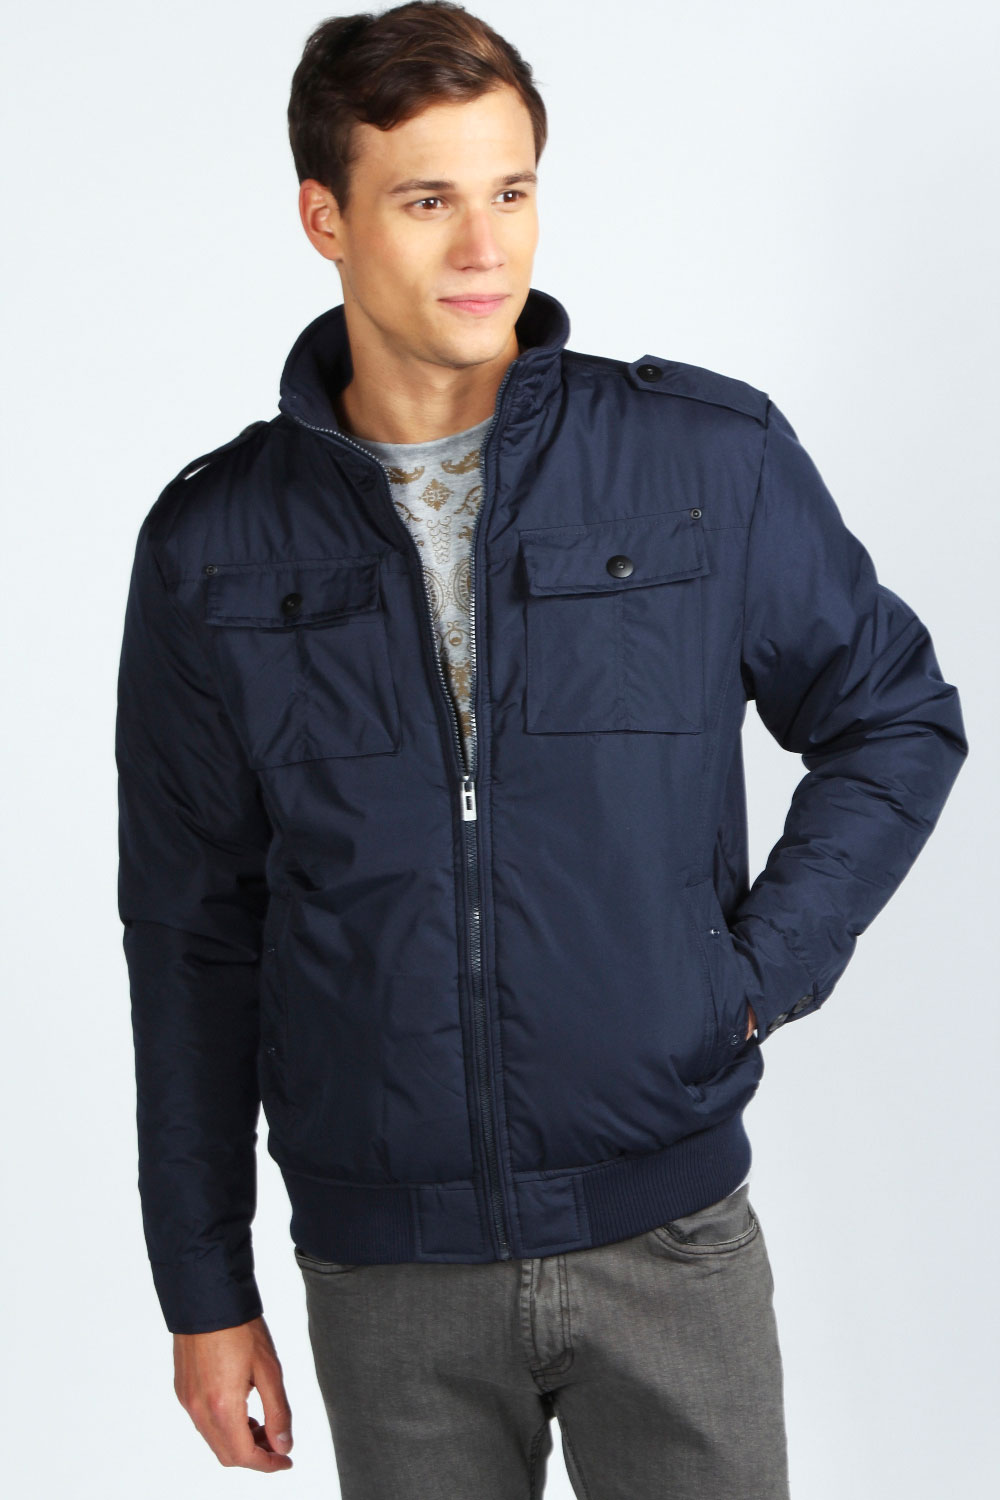 Boohoo Mens Nylon Chest Pocket Bomber Jacket In Navy Blue | eBay